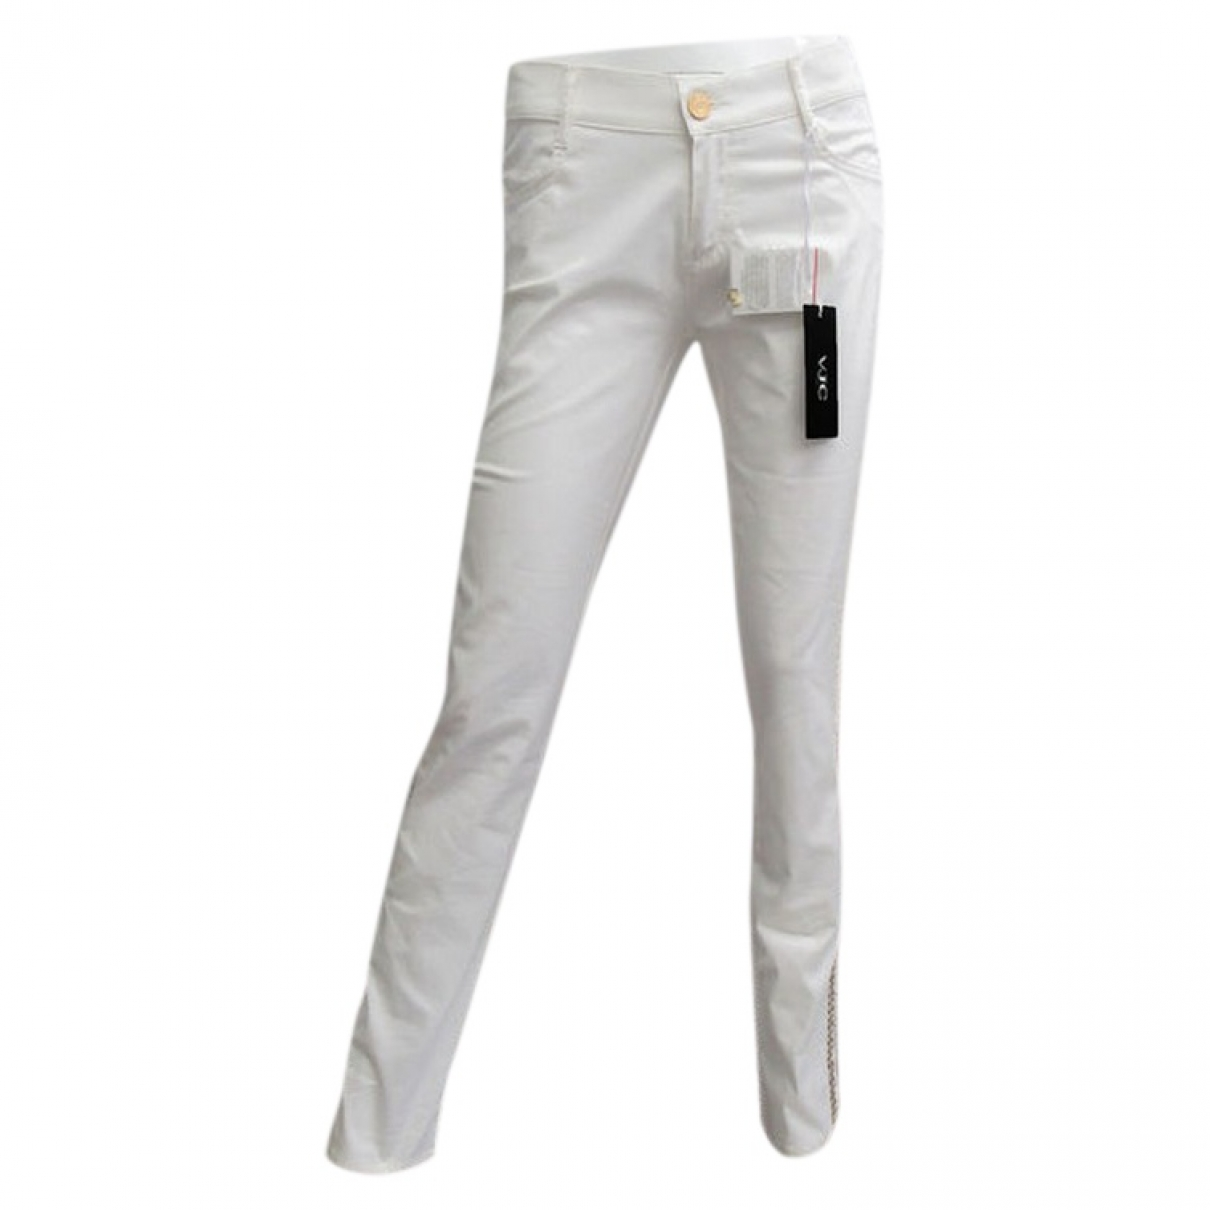 Versace Jeans \N White Cotton Trousers for Women XS International